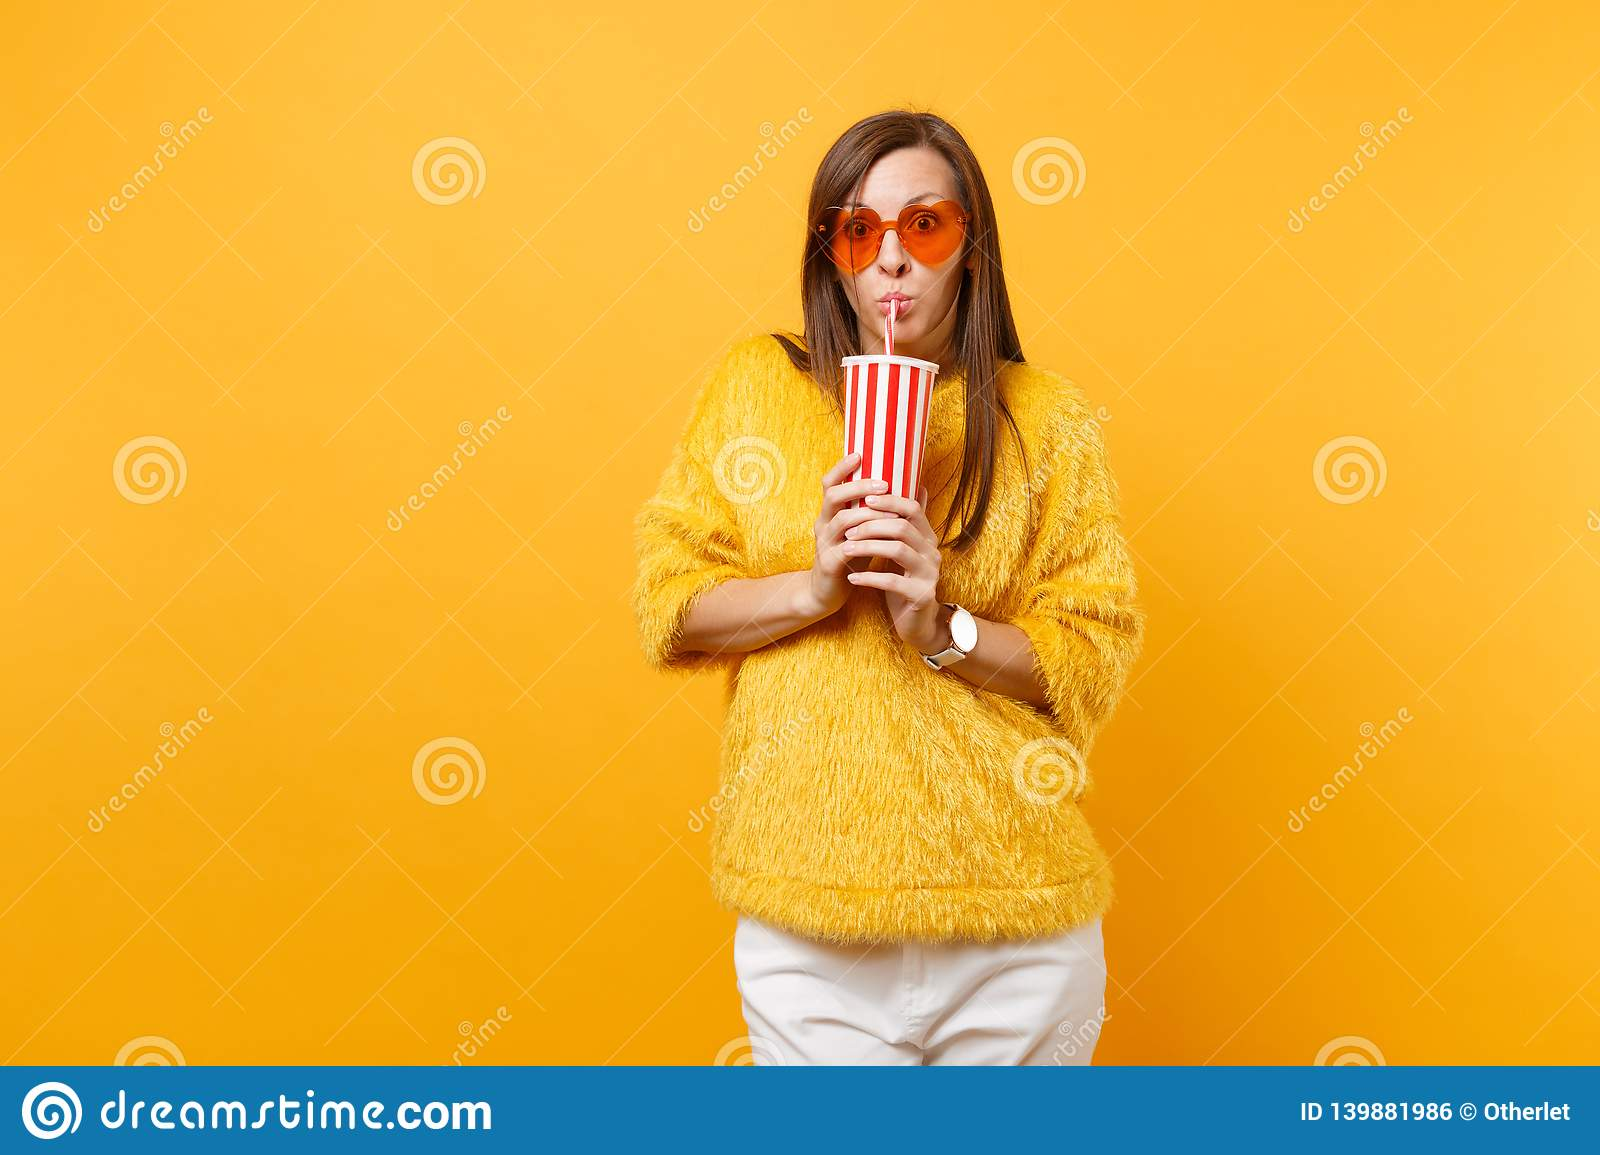 Shocked young woman in fur sweater and heart orange glasses drinking cola or soda from plastic cup isolated on bright